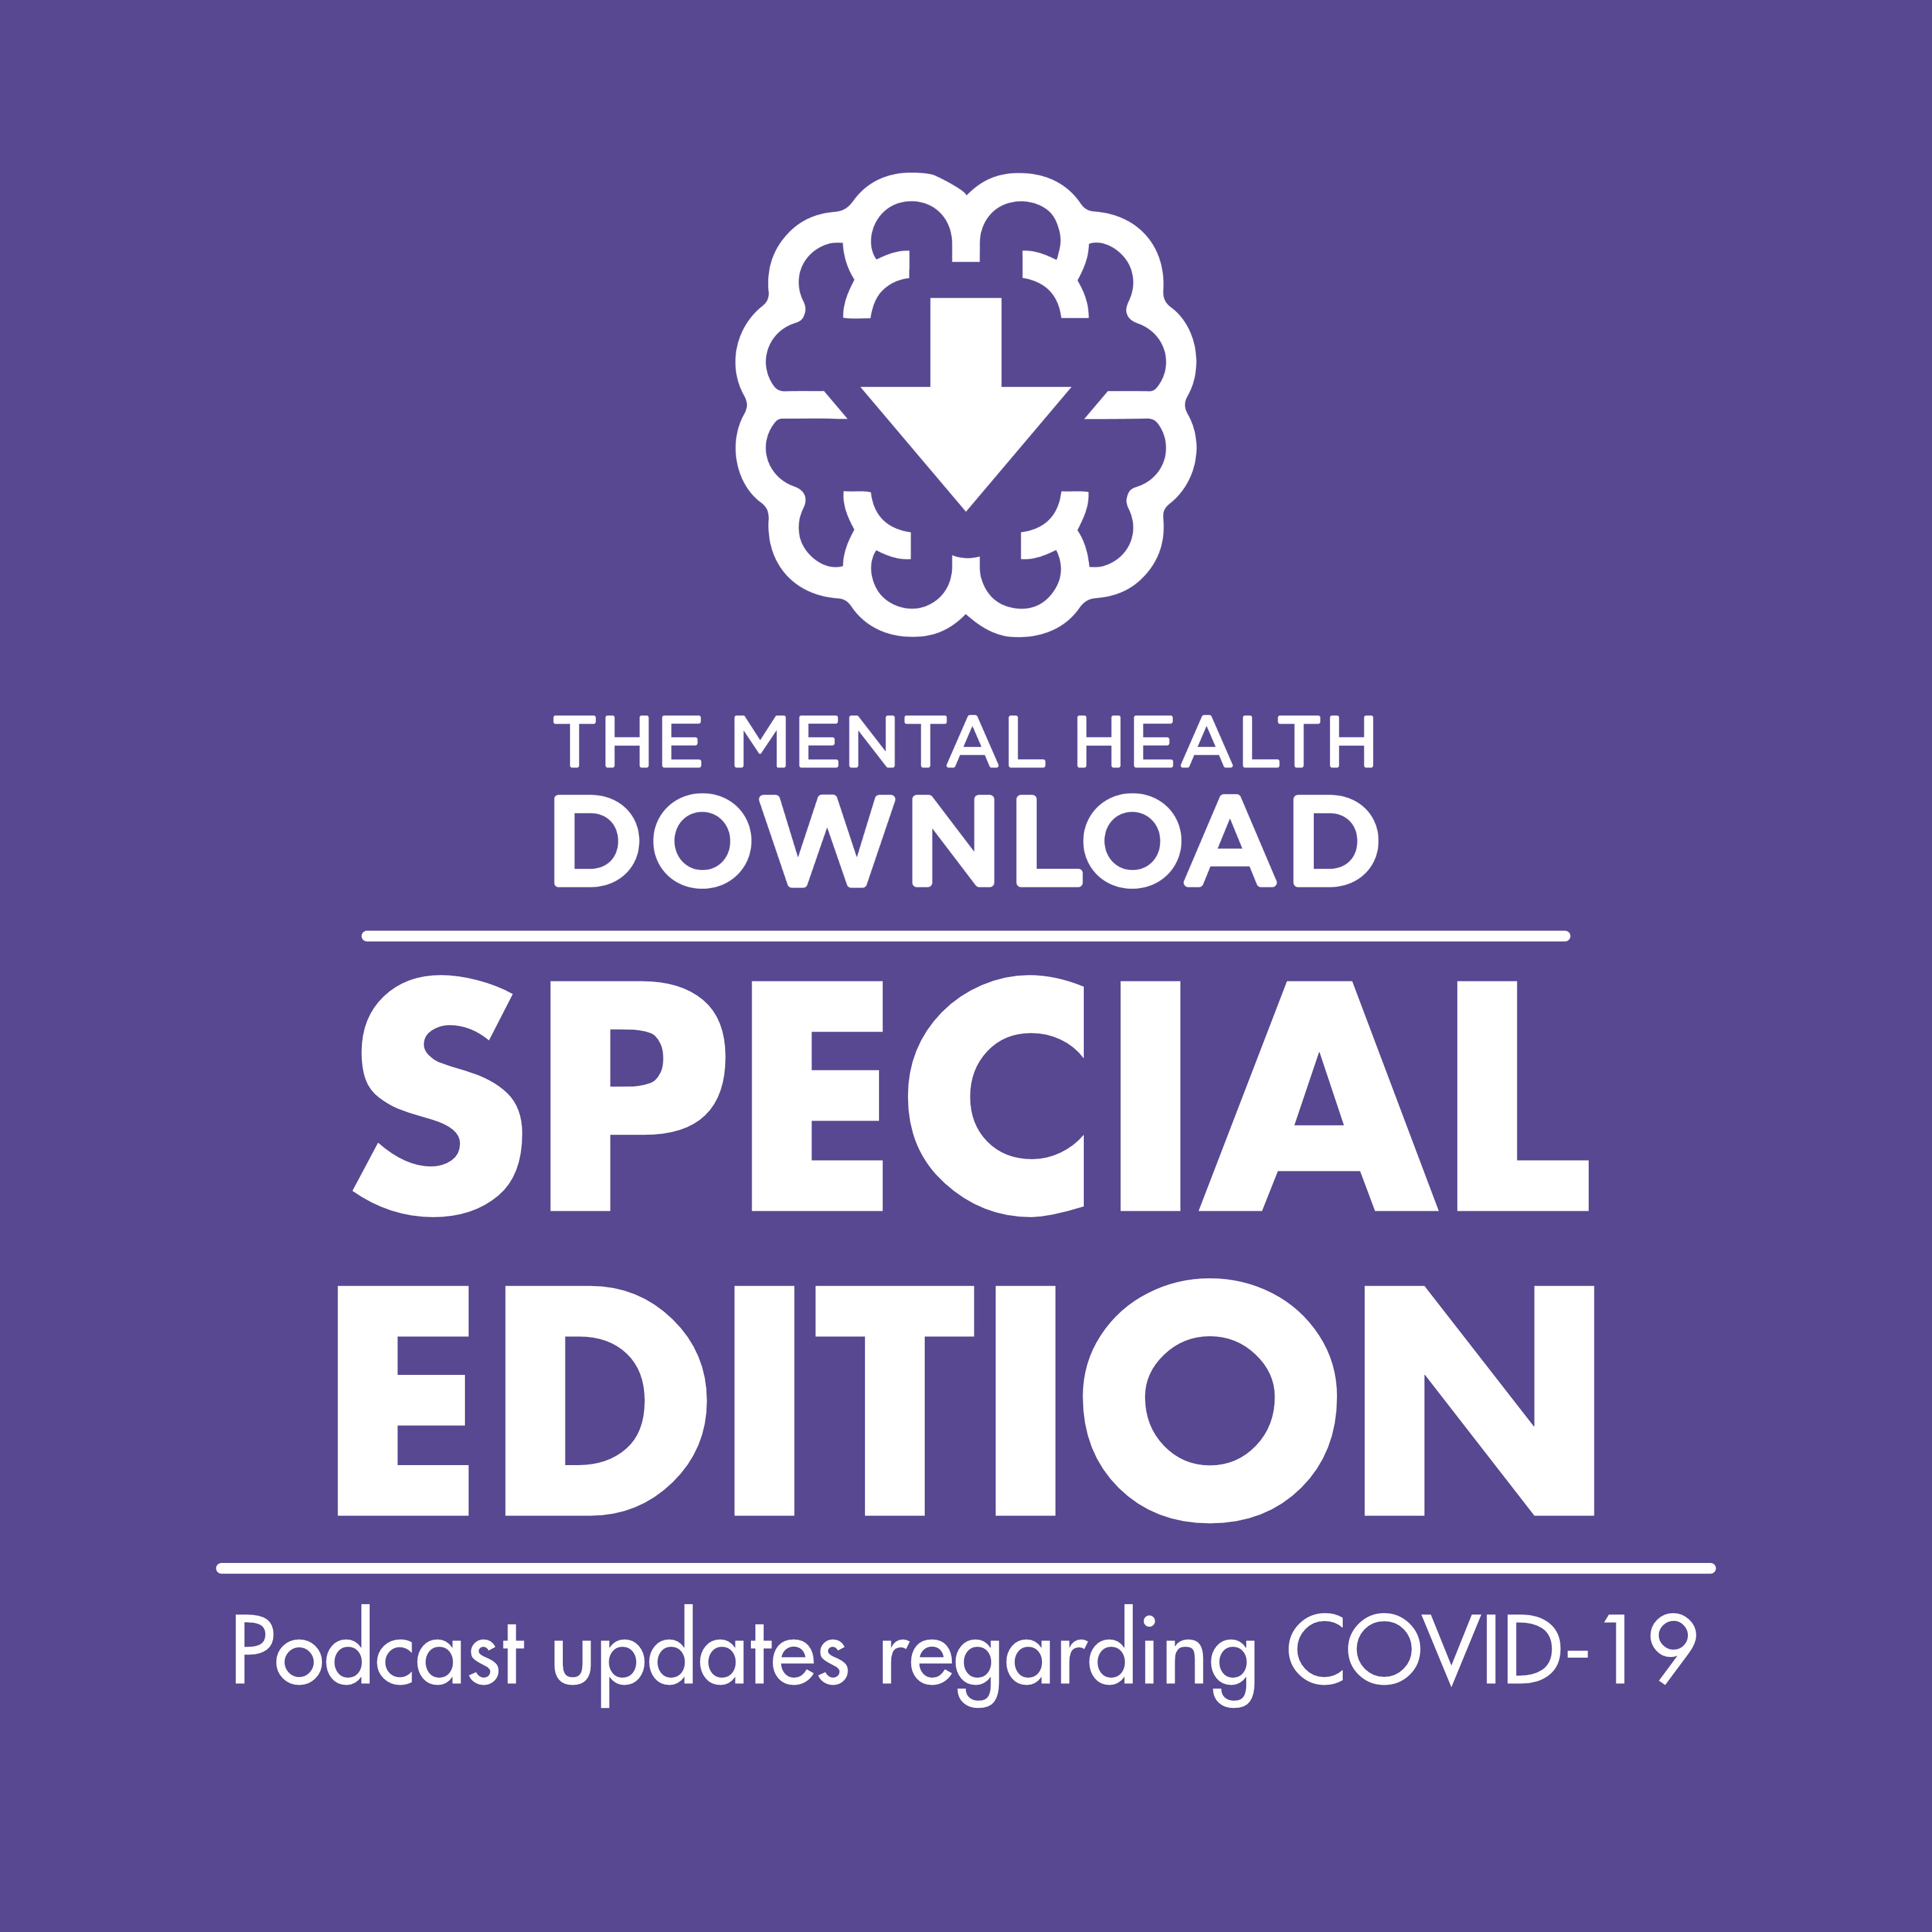 Mental Health Download: Exploring Mental Illness, Suicide, Homelessness and Incarceration - COVID-19 Series: Jennifer Sack, High School Counselor